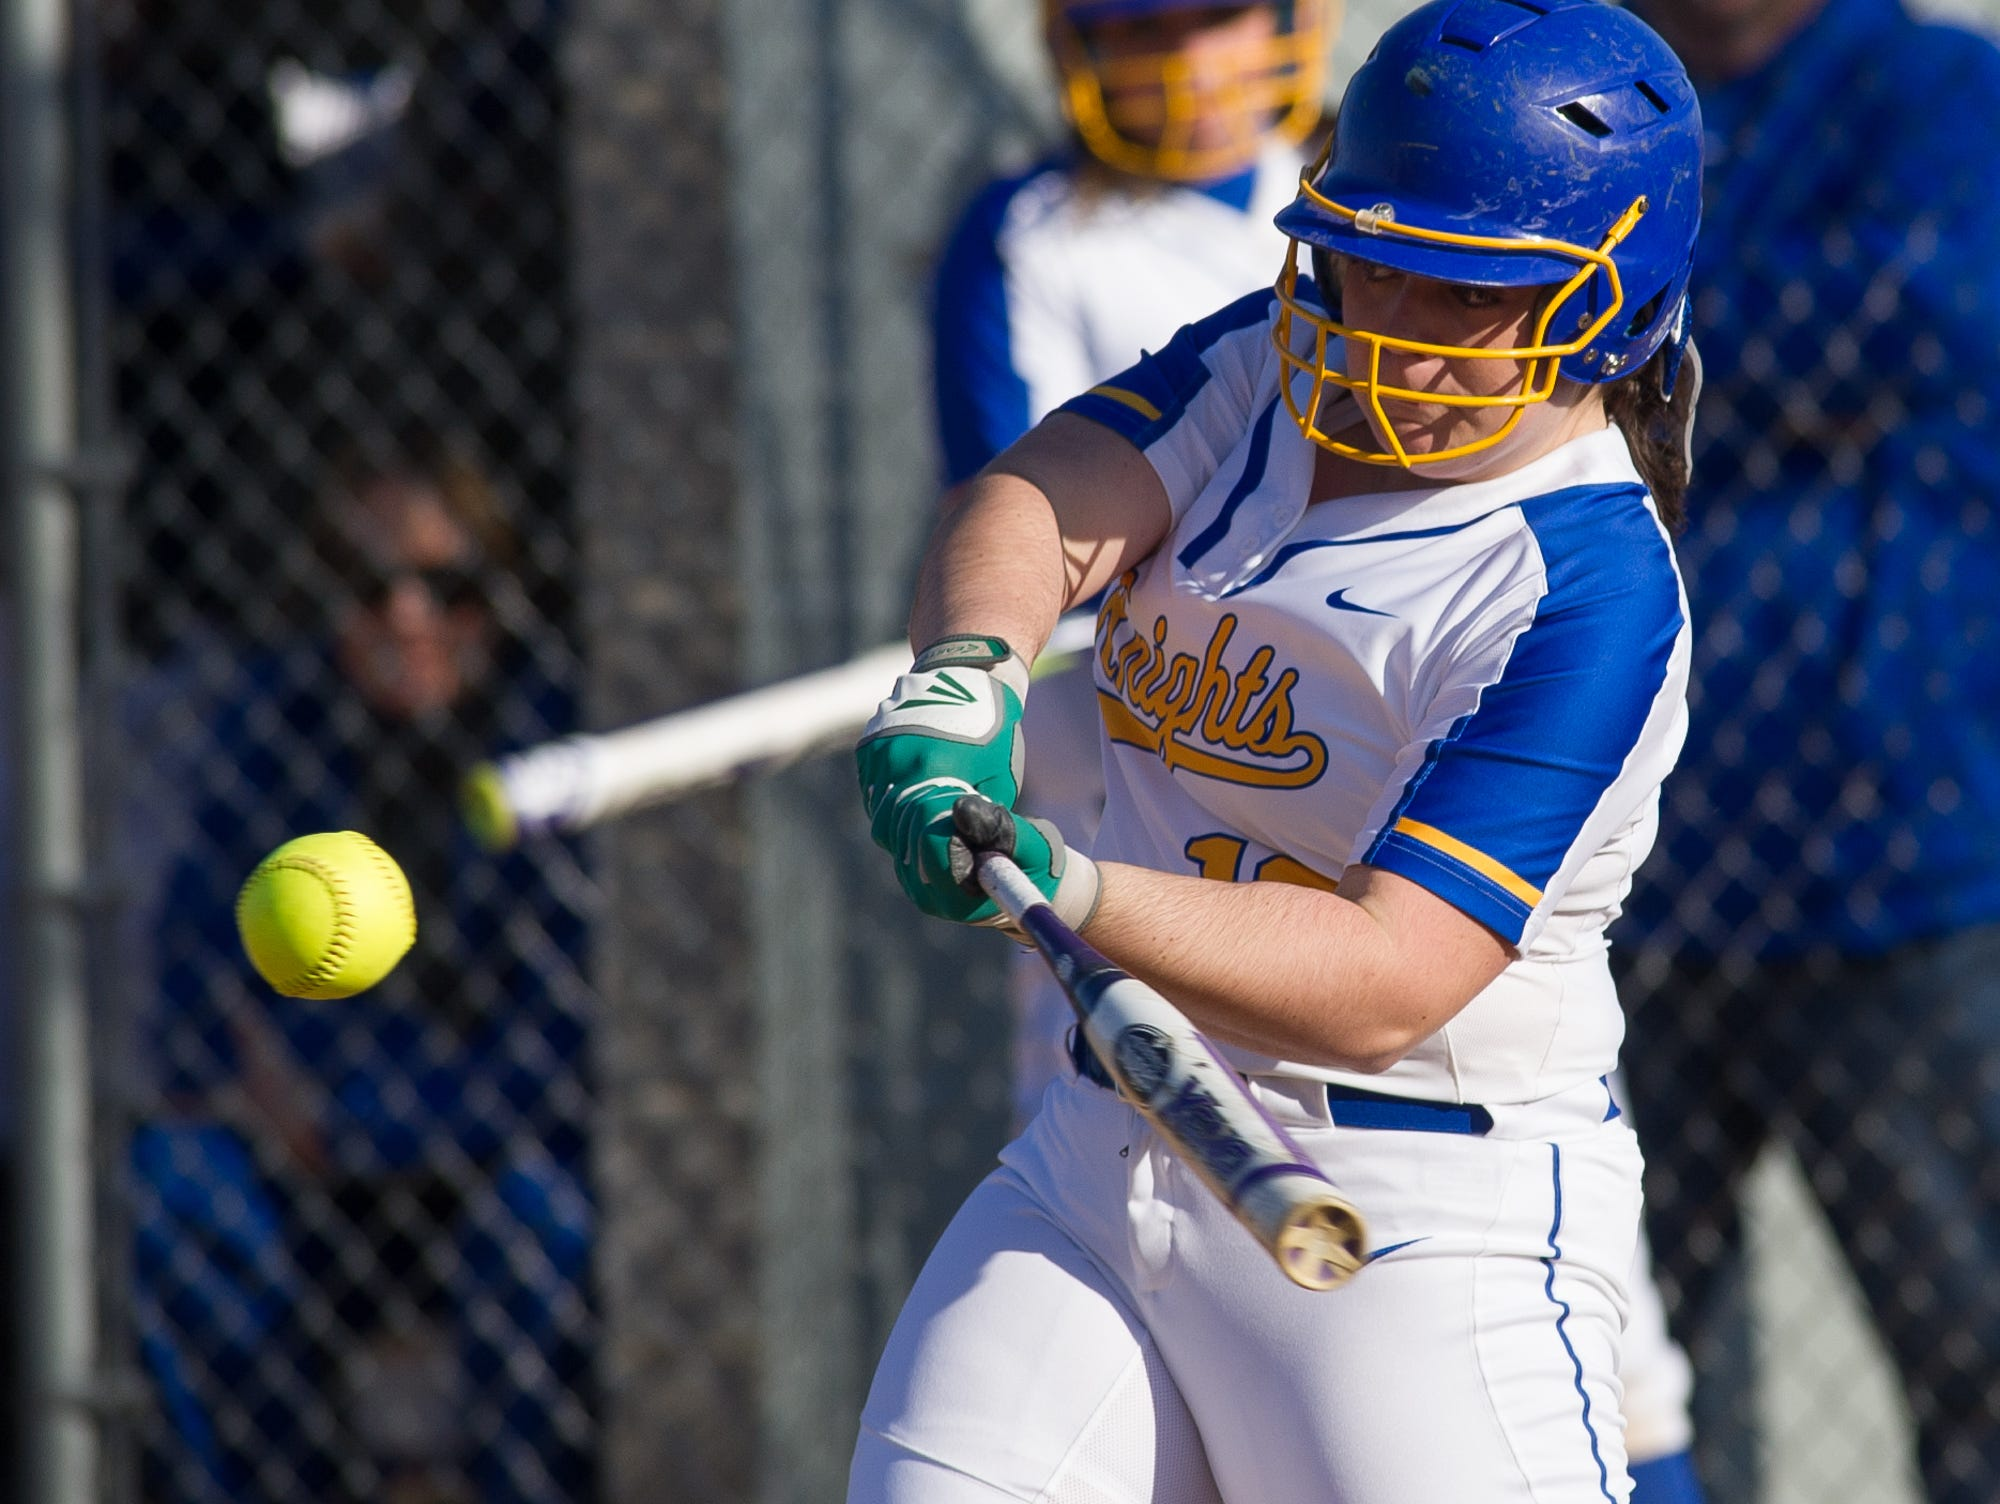 Sussex Central's Taylor Evick (12) takes a swing at a pitch in their game against Sussex Tech.